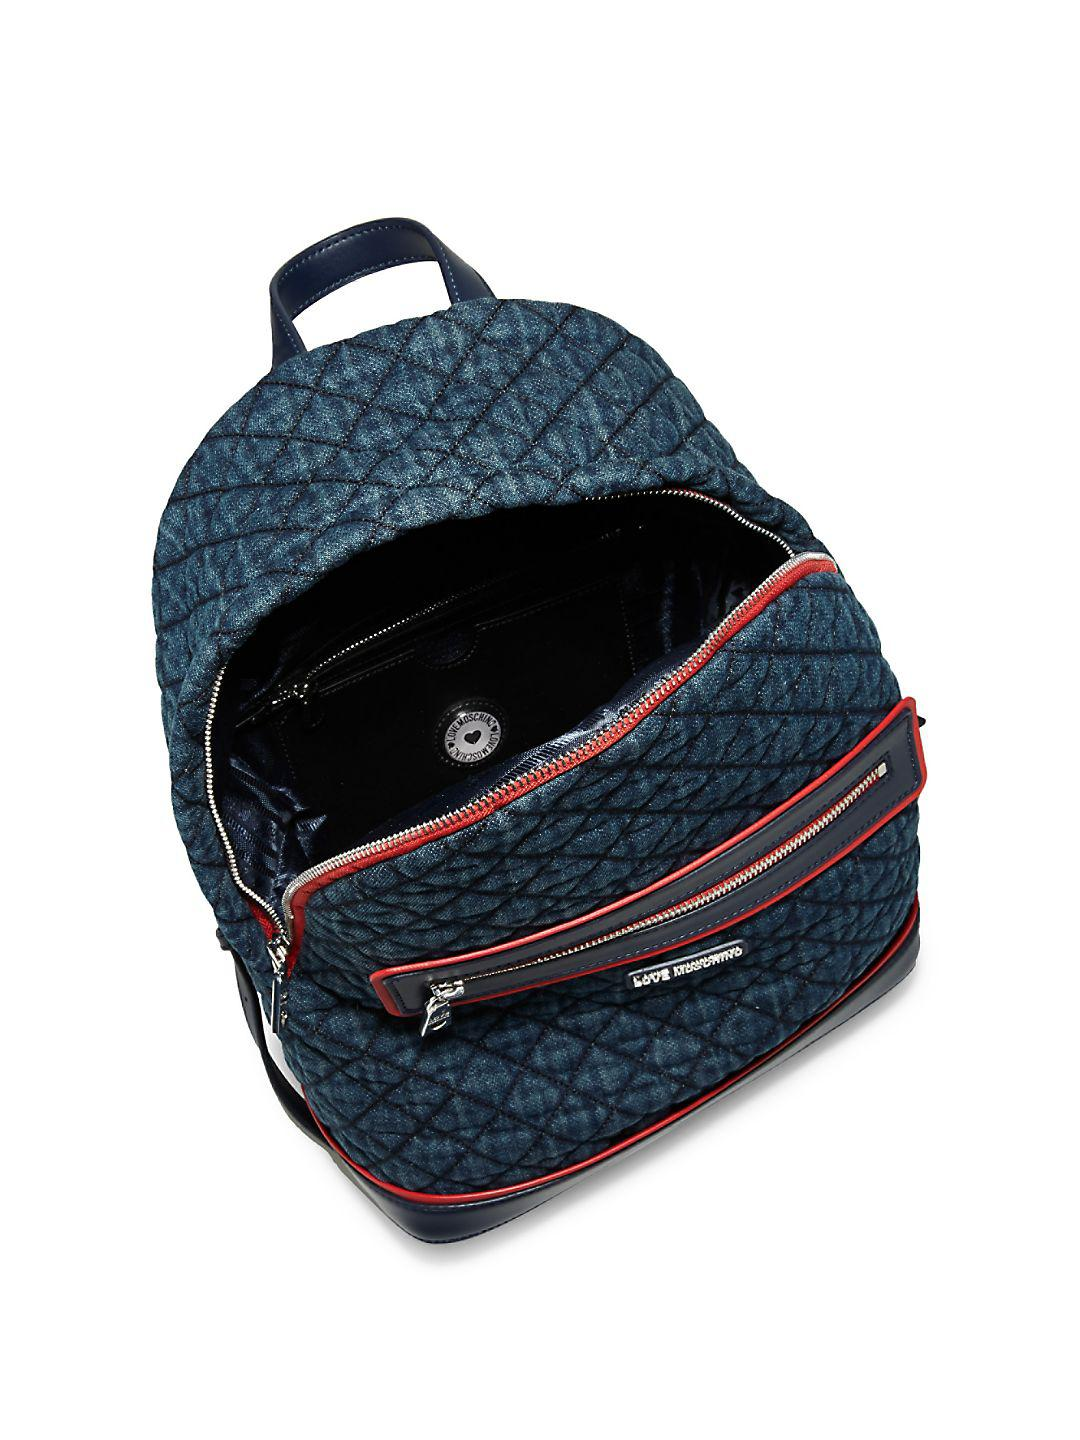 0b089d2cf4b562 Lyst - Love Moschino Quilted Denim Backpack in Blue